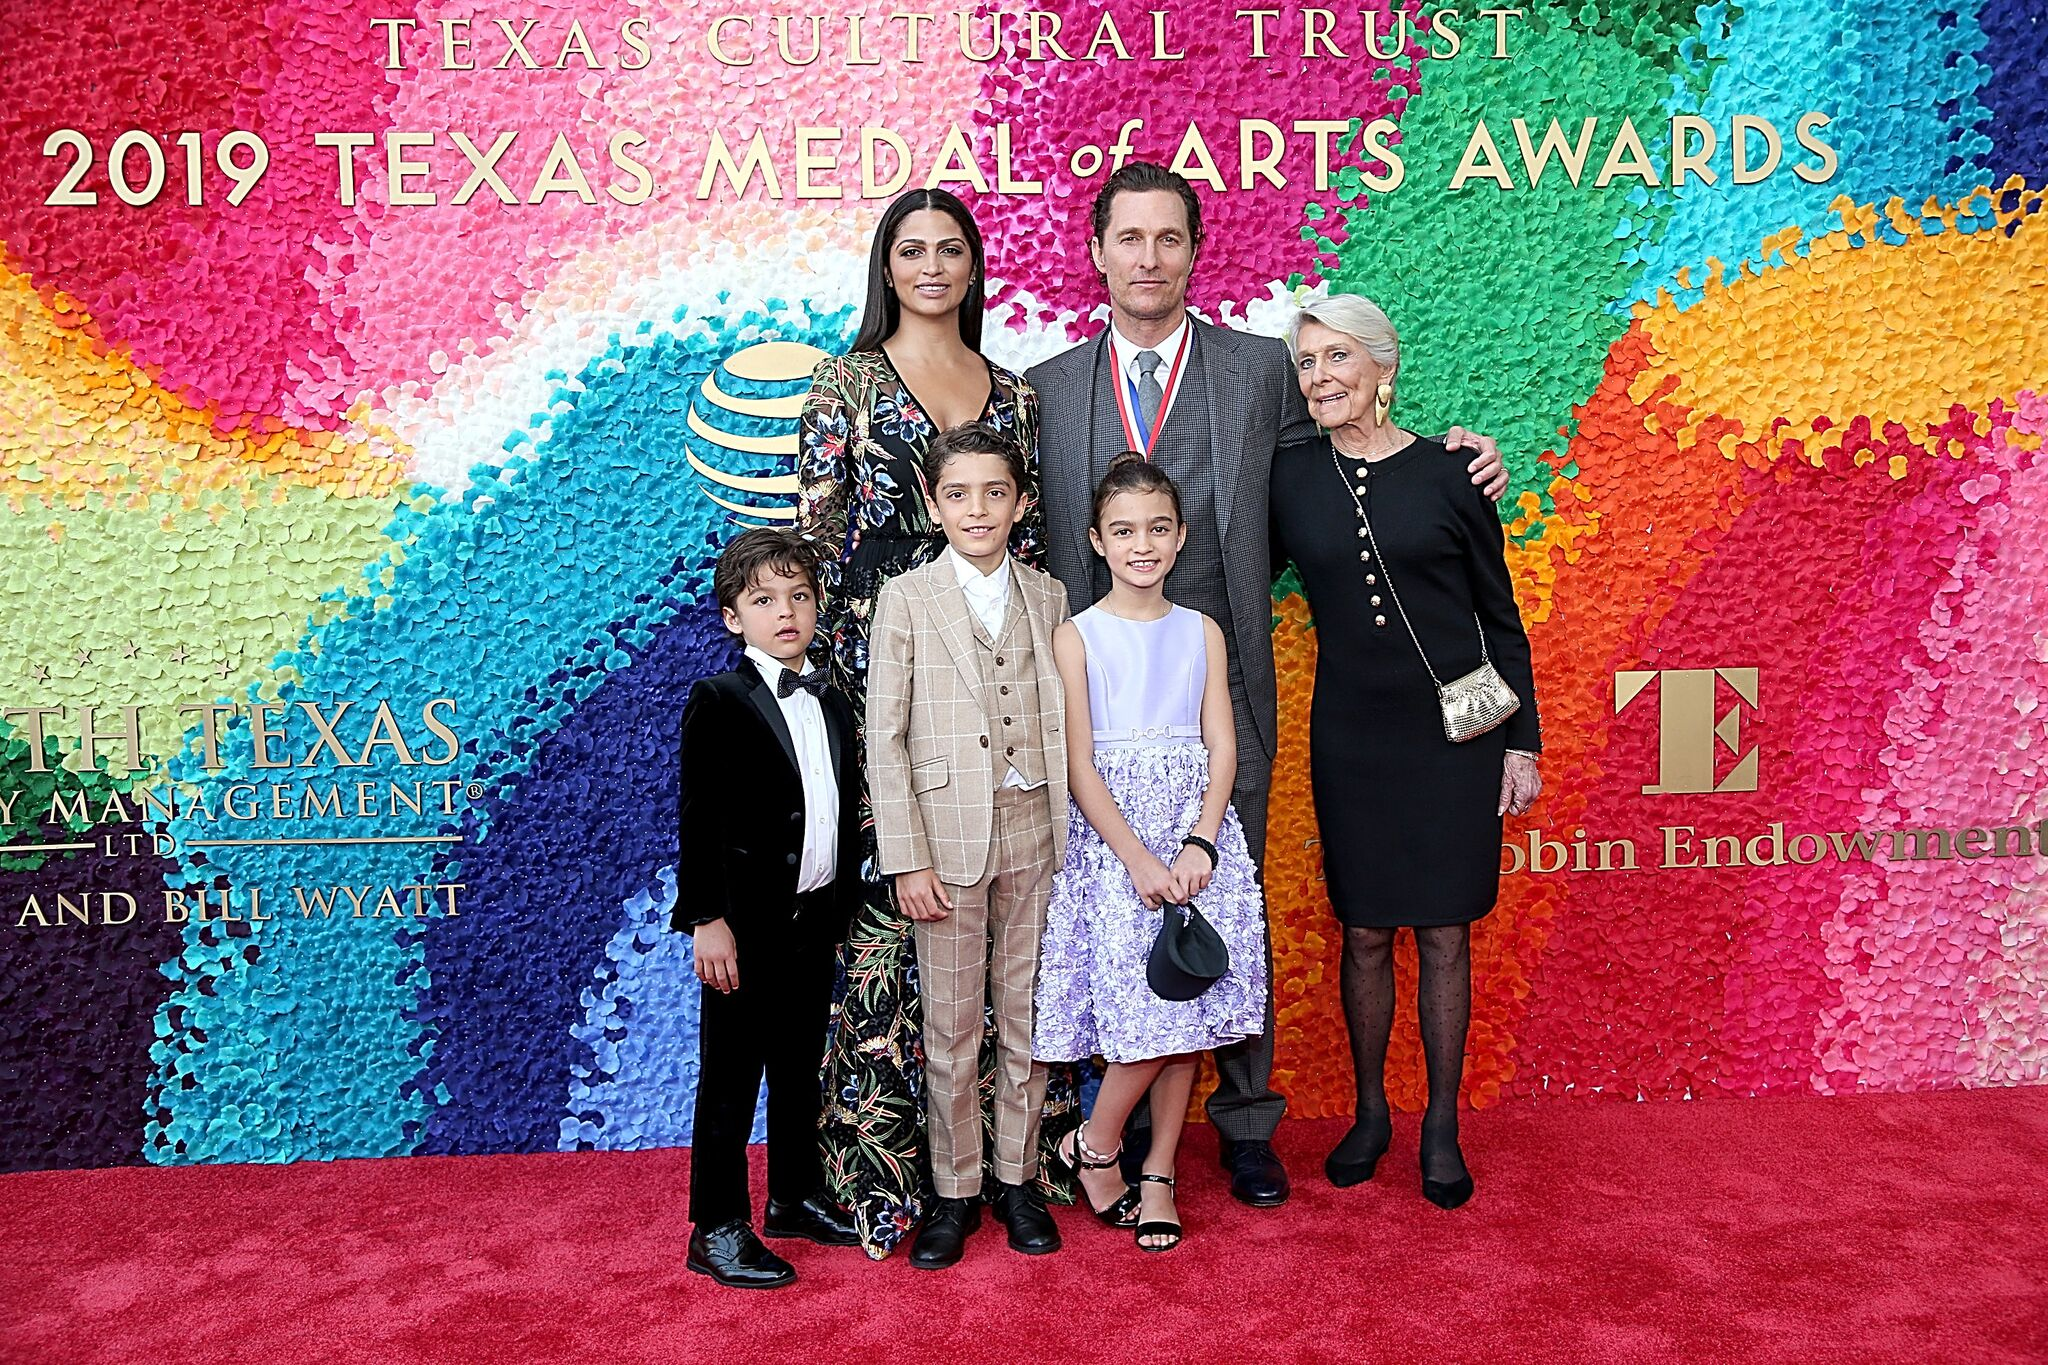 Livingston Alves McConaughey, Camila Alves, Levi Alves McConaughey, honoree Matthew McConaughey, Vida Alves McConaughey and Kay McConaughey attend the Texas Medal Of Arts Awards | Getty Images